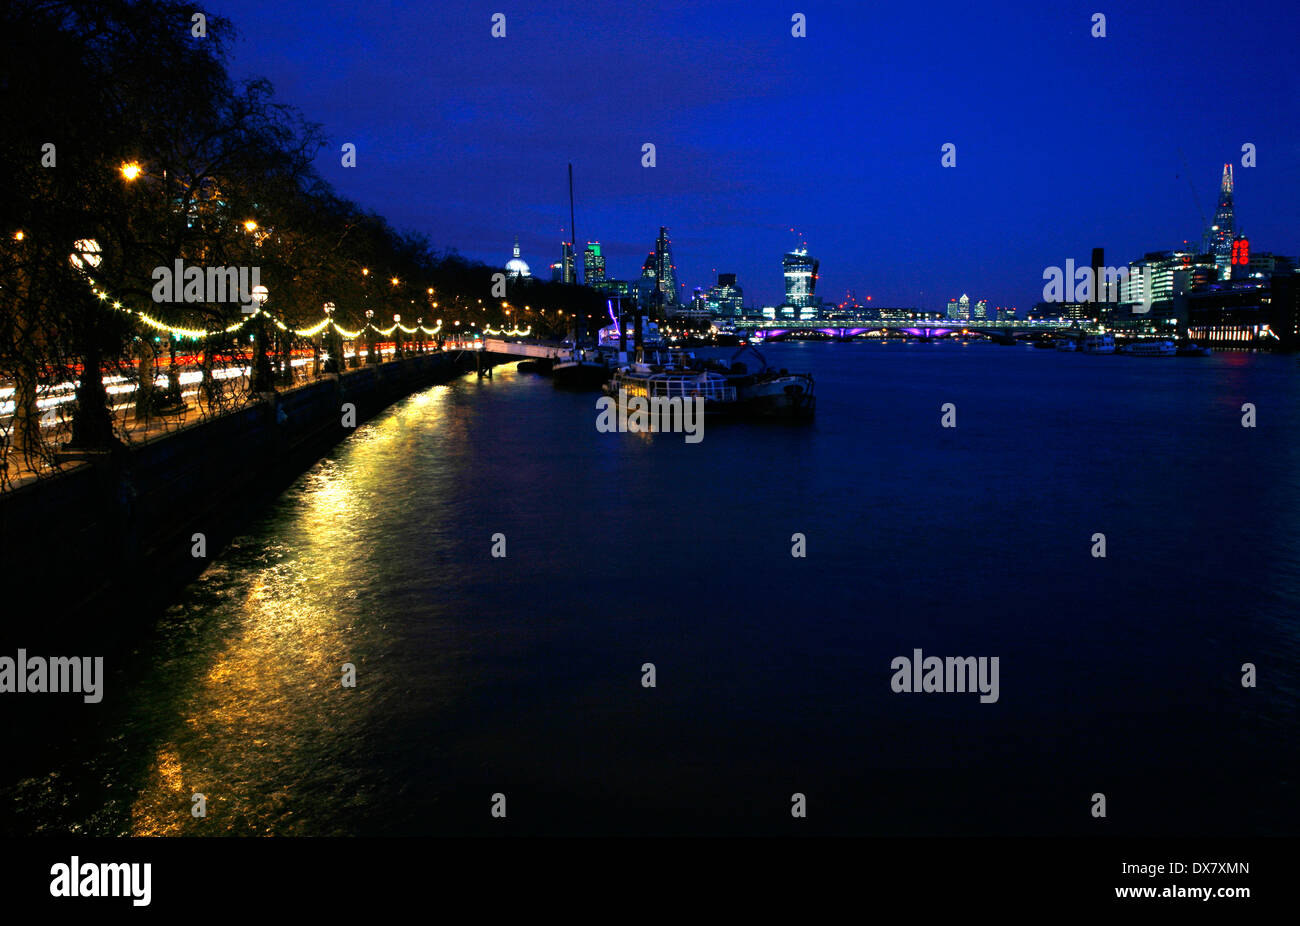 View from Victoria Embankment down the River Thames to Blackfriars Bridge and the City of London beyond, London, UK - Stock Image